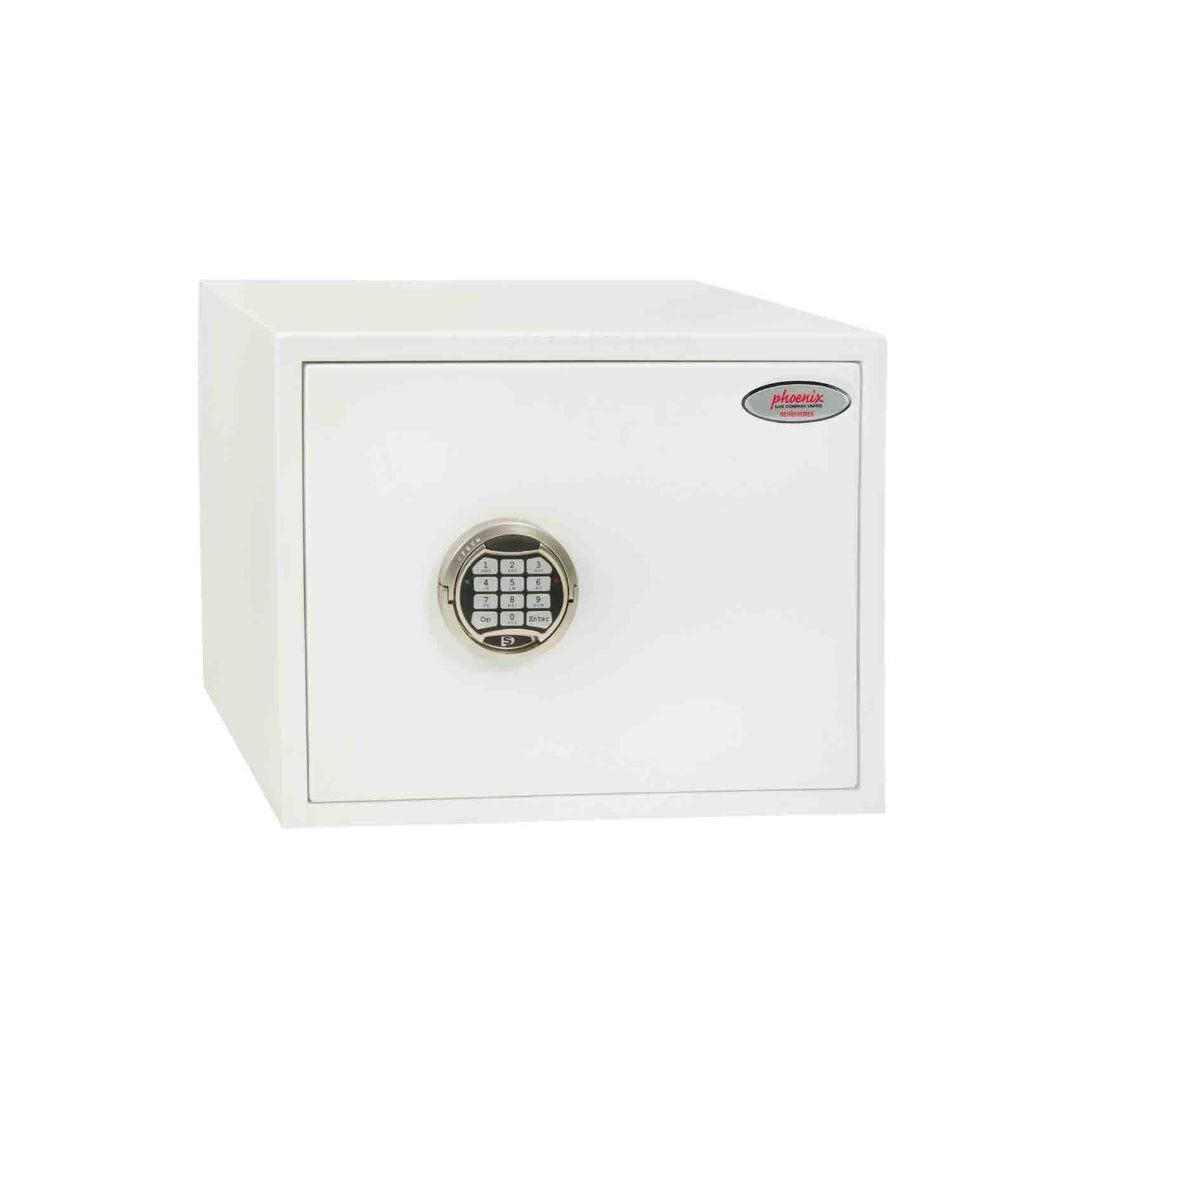 Phoenix Fortress S2 Security Safe with Electronic Lock Size 2